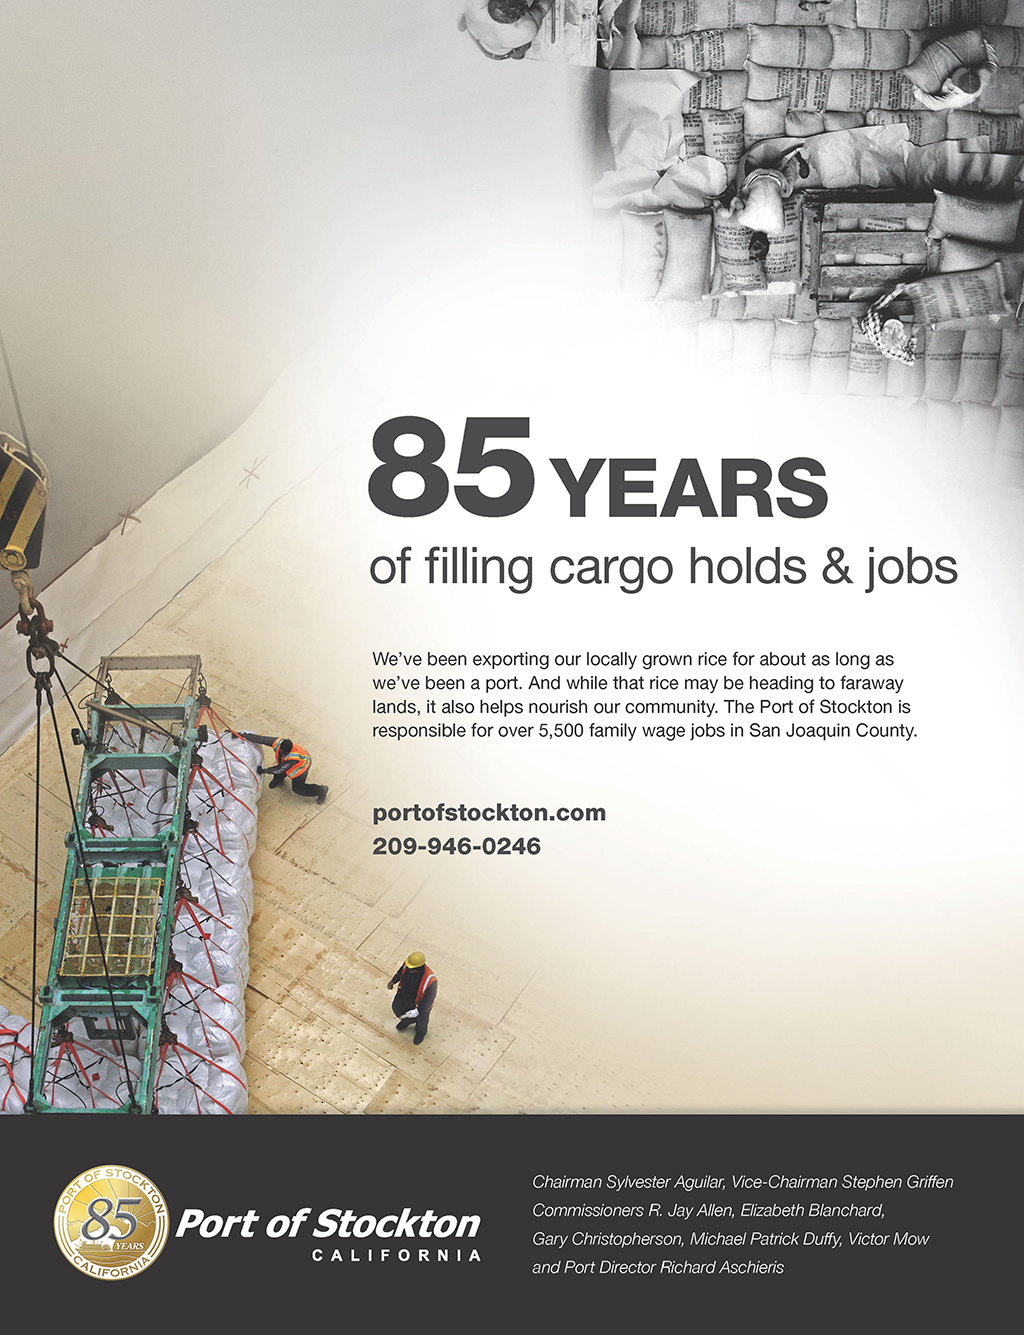 85 Years of Filling Cargo Holds & Jobs